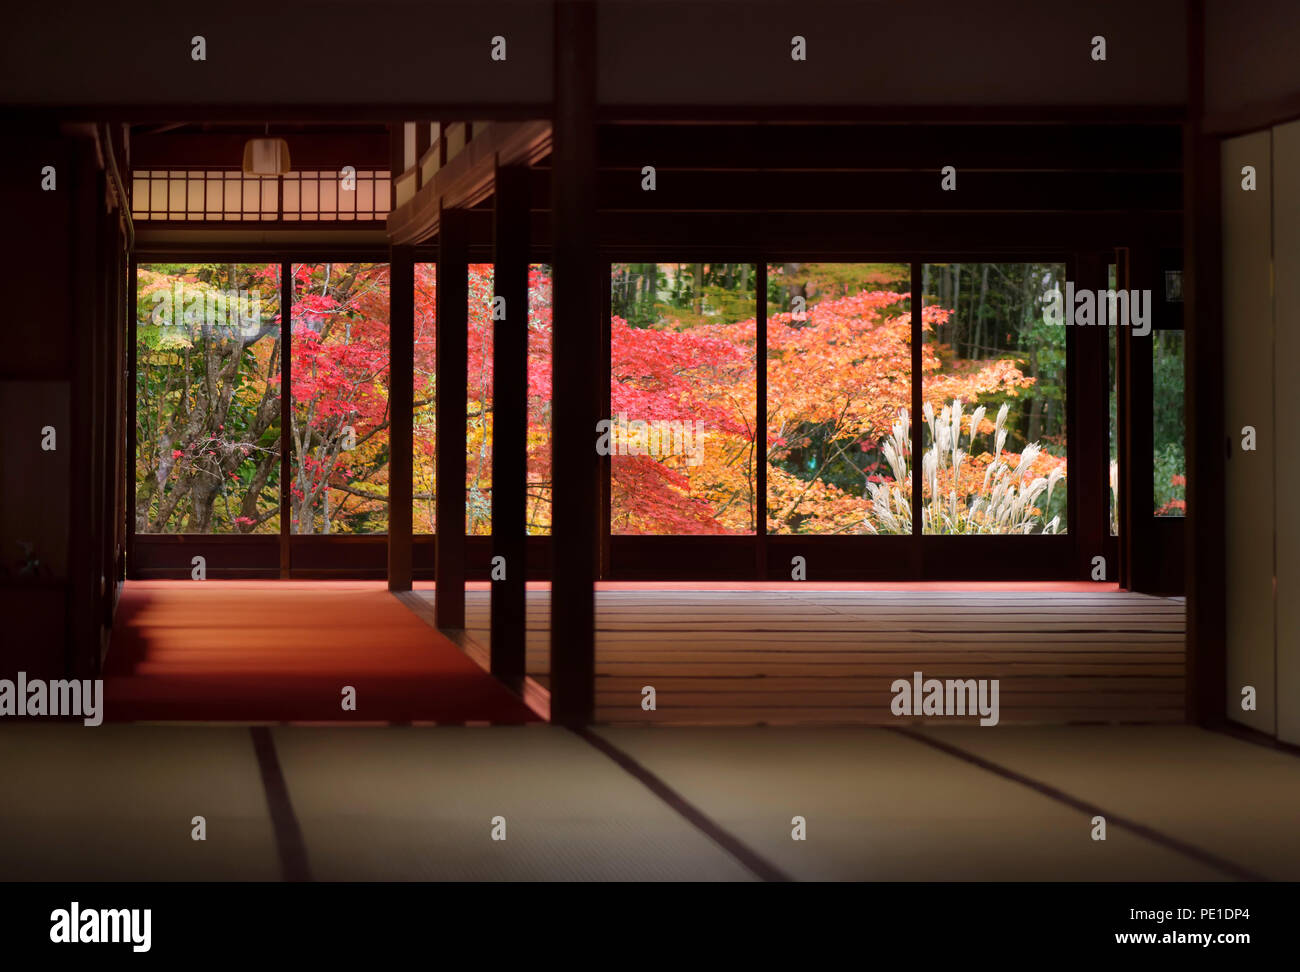 Traditional Japanese room interior with a beautiful colorful autumn nature scenery behind the windows. Tenjuan historic temple hall, Nanzen-ji complex - Stock Image